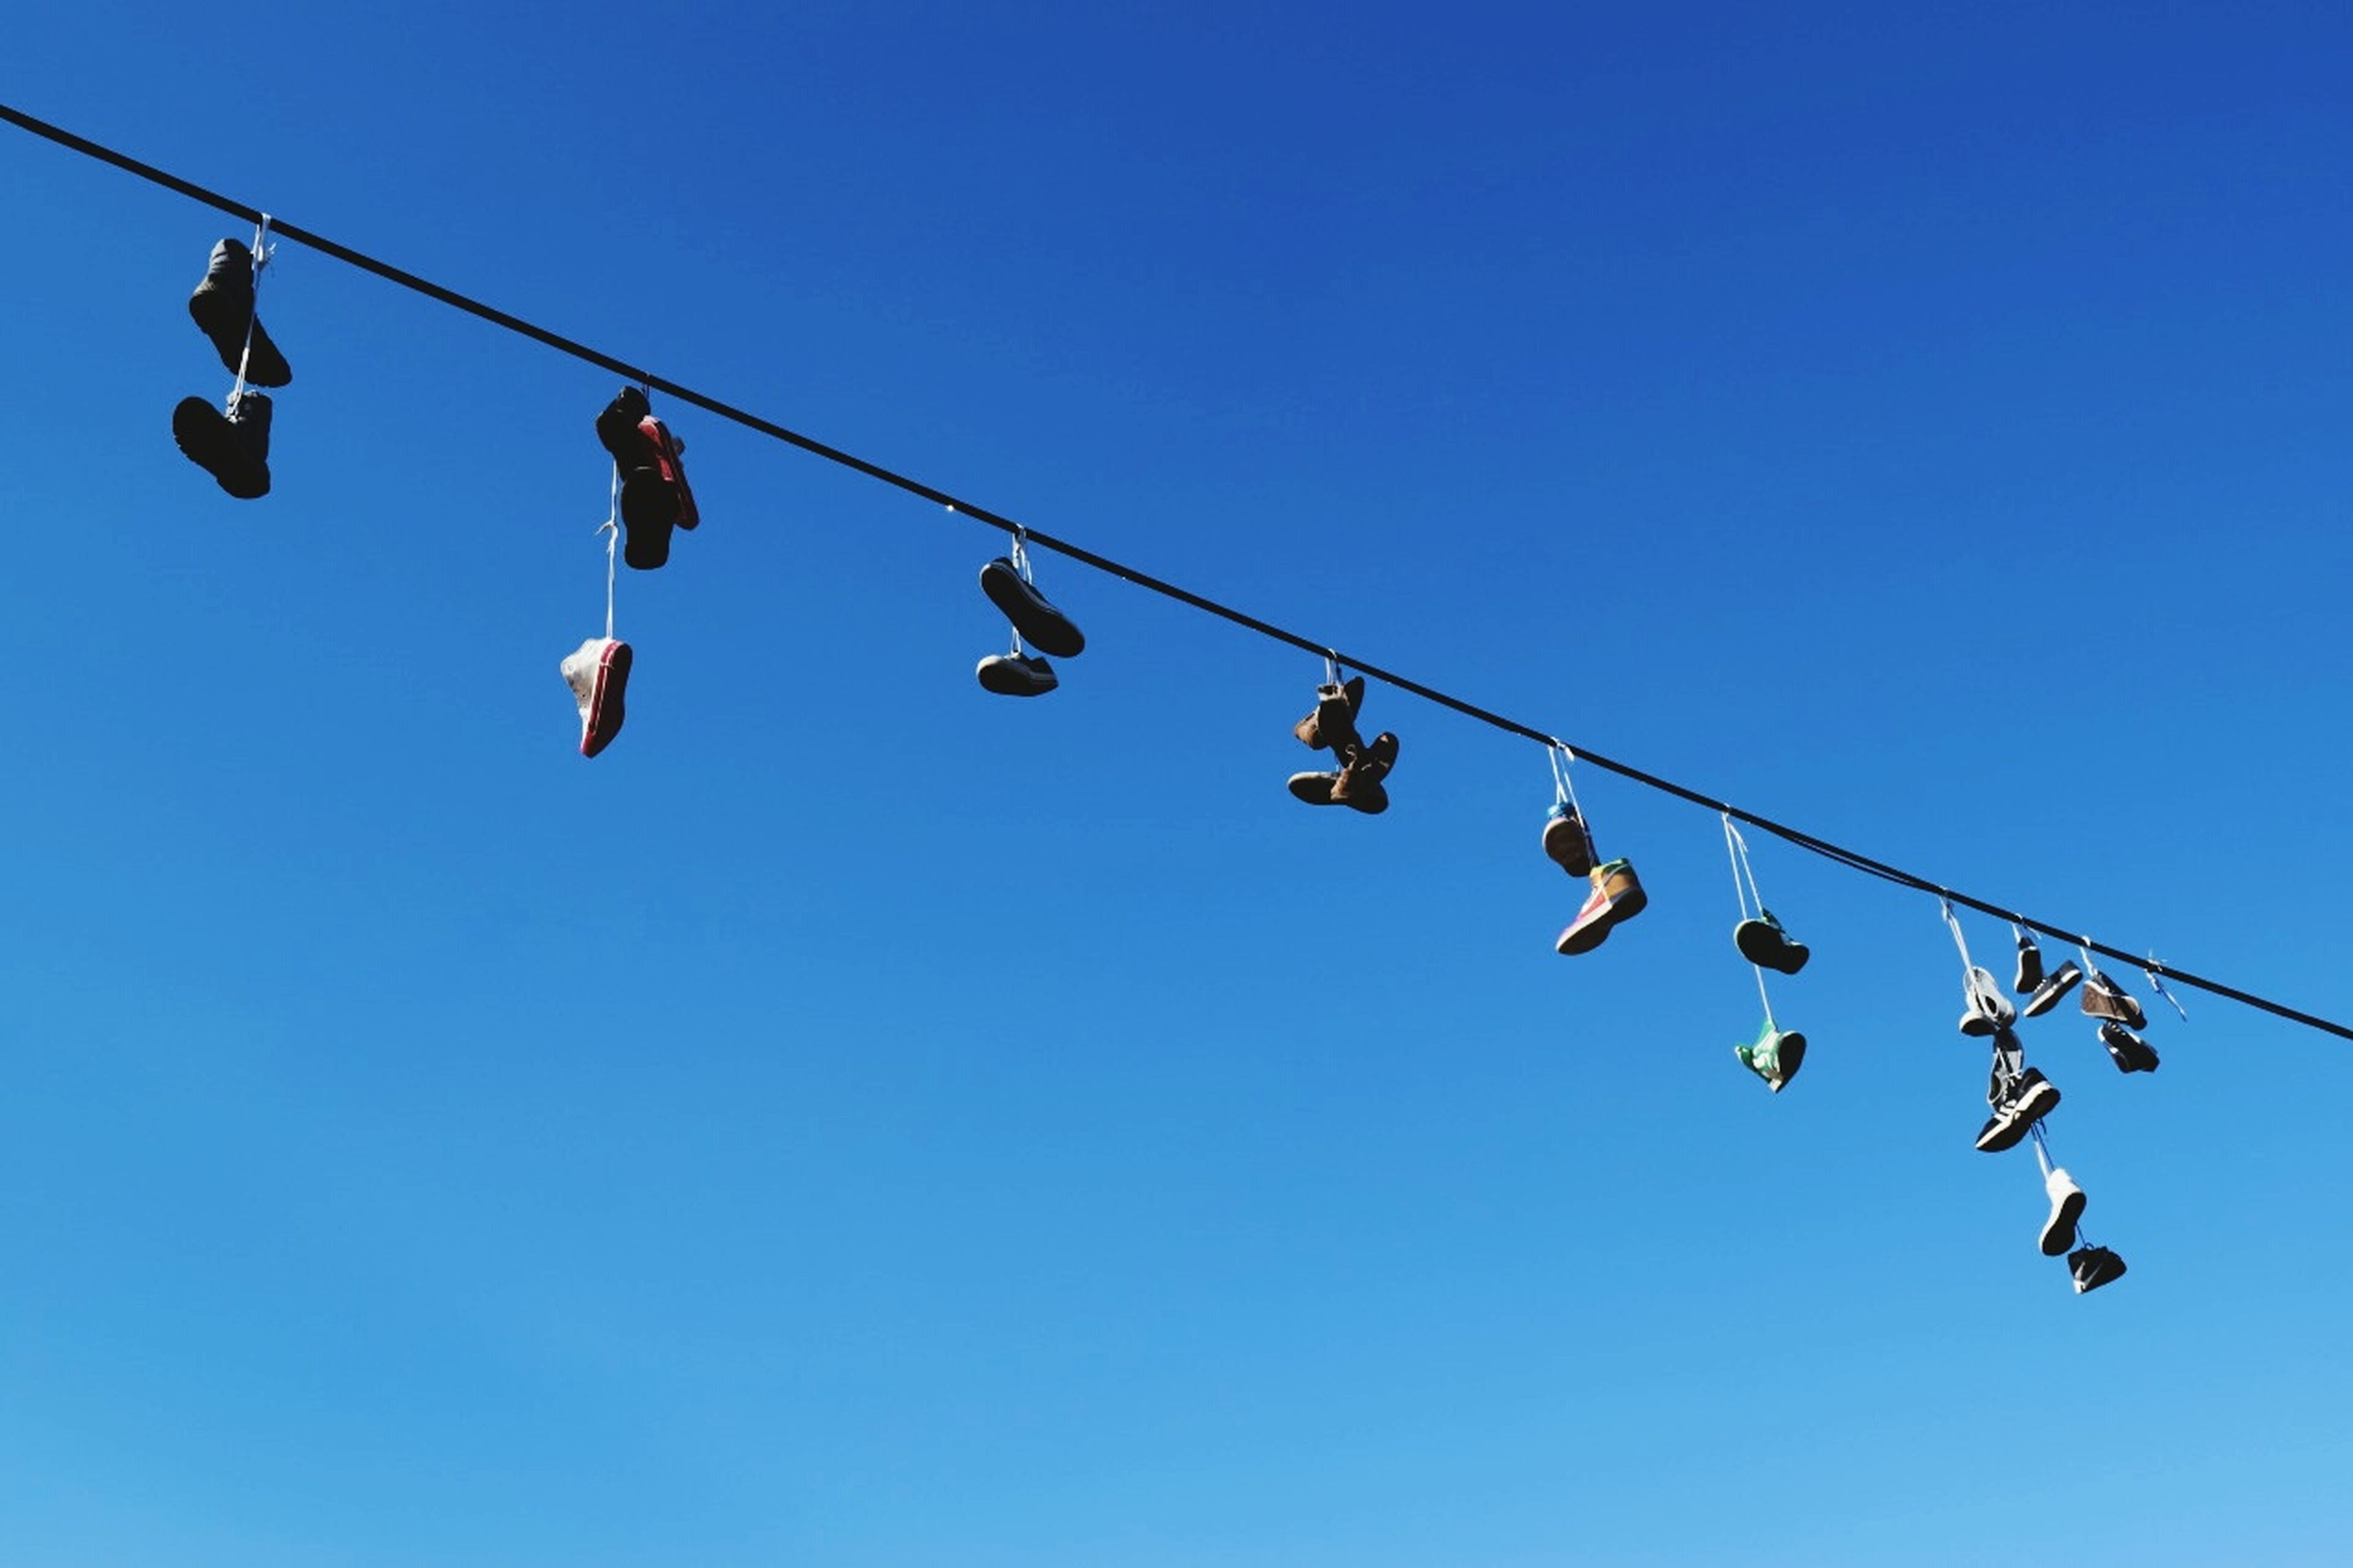 hanging, low angle view, blue, clear sky, cable, in a row, shoe, rope, clothesline, clothespin, day, bizarre, large group of objects, string, group of objects, nature, summer, laundry, power line, medium group of objects, tranquility, multi colored